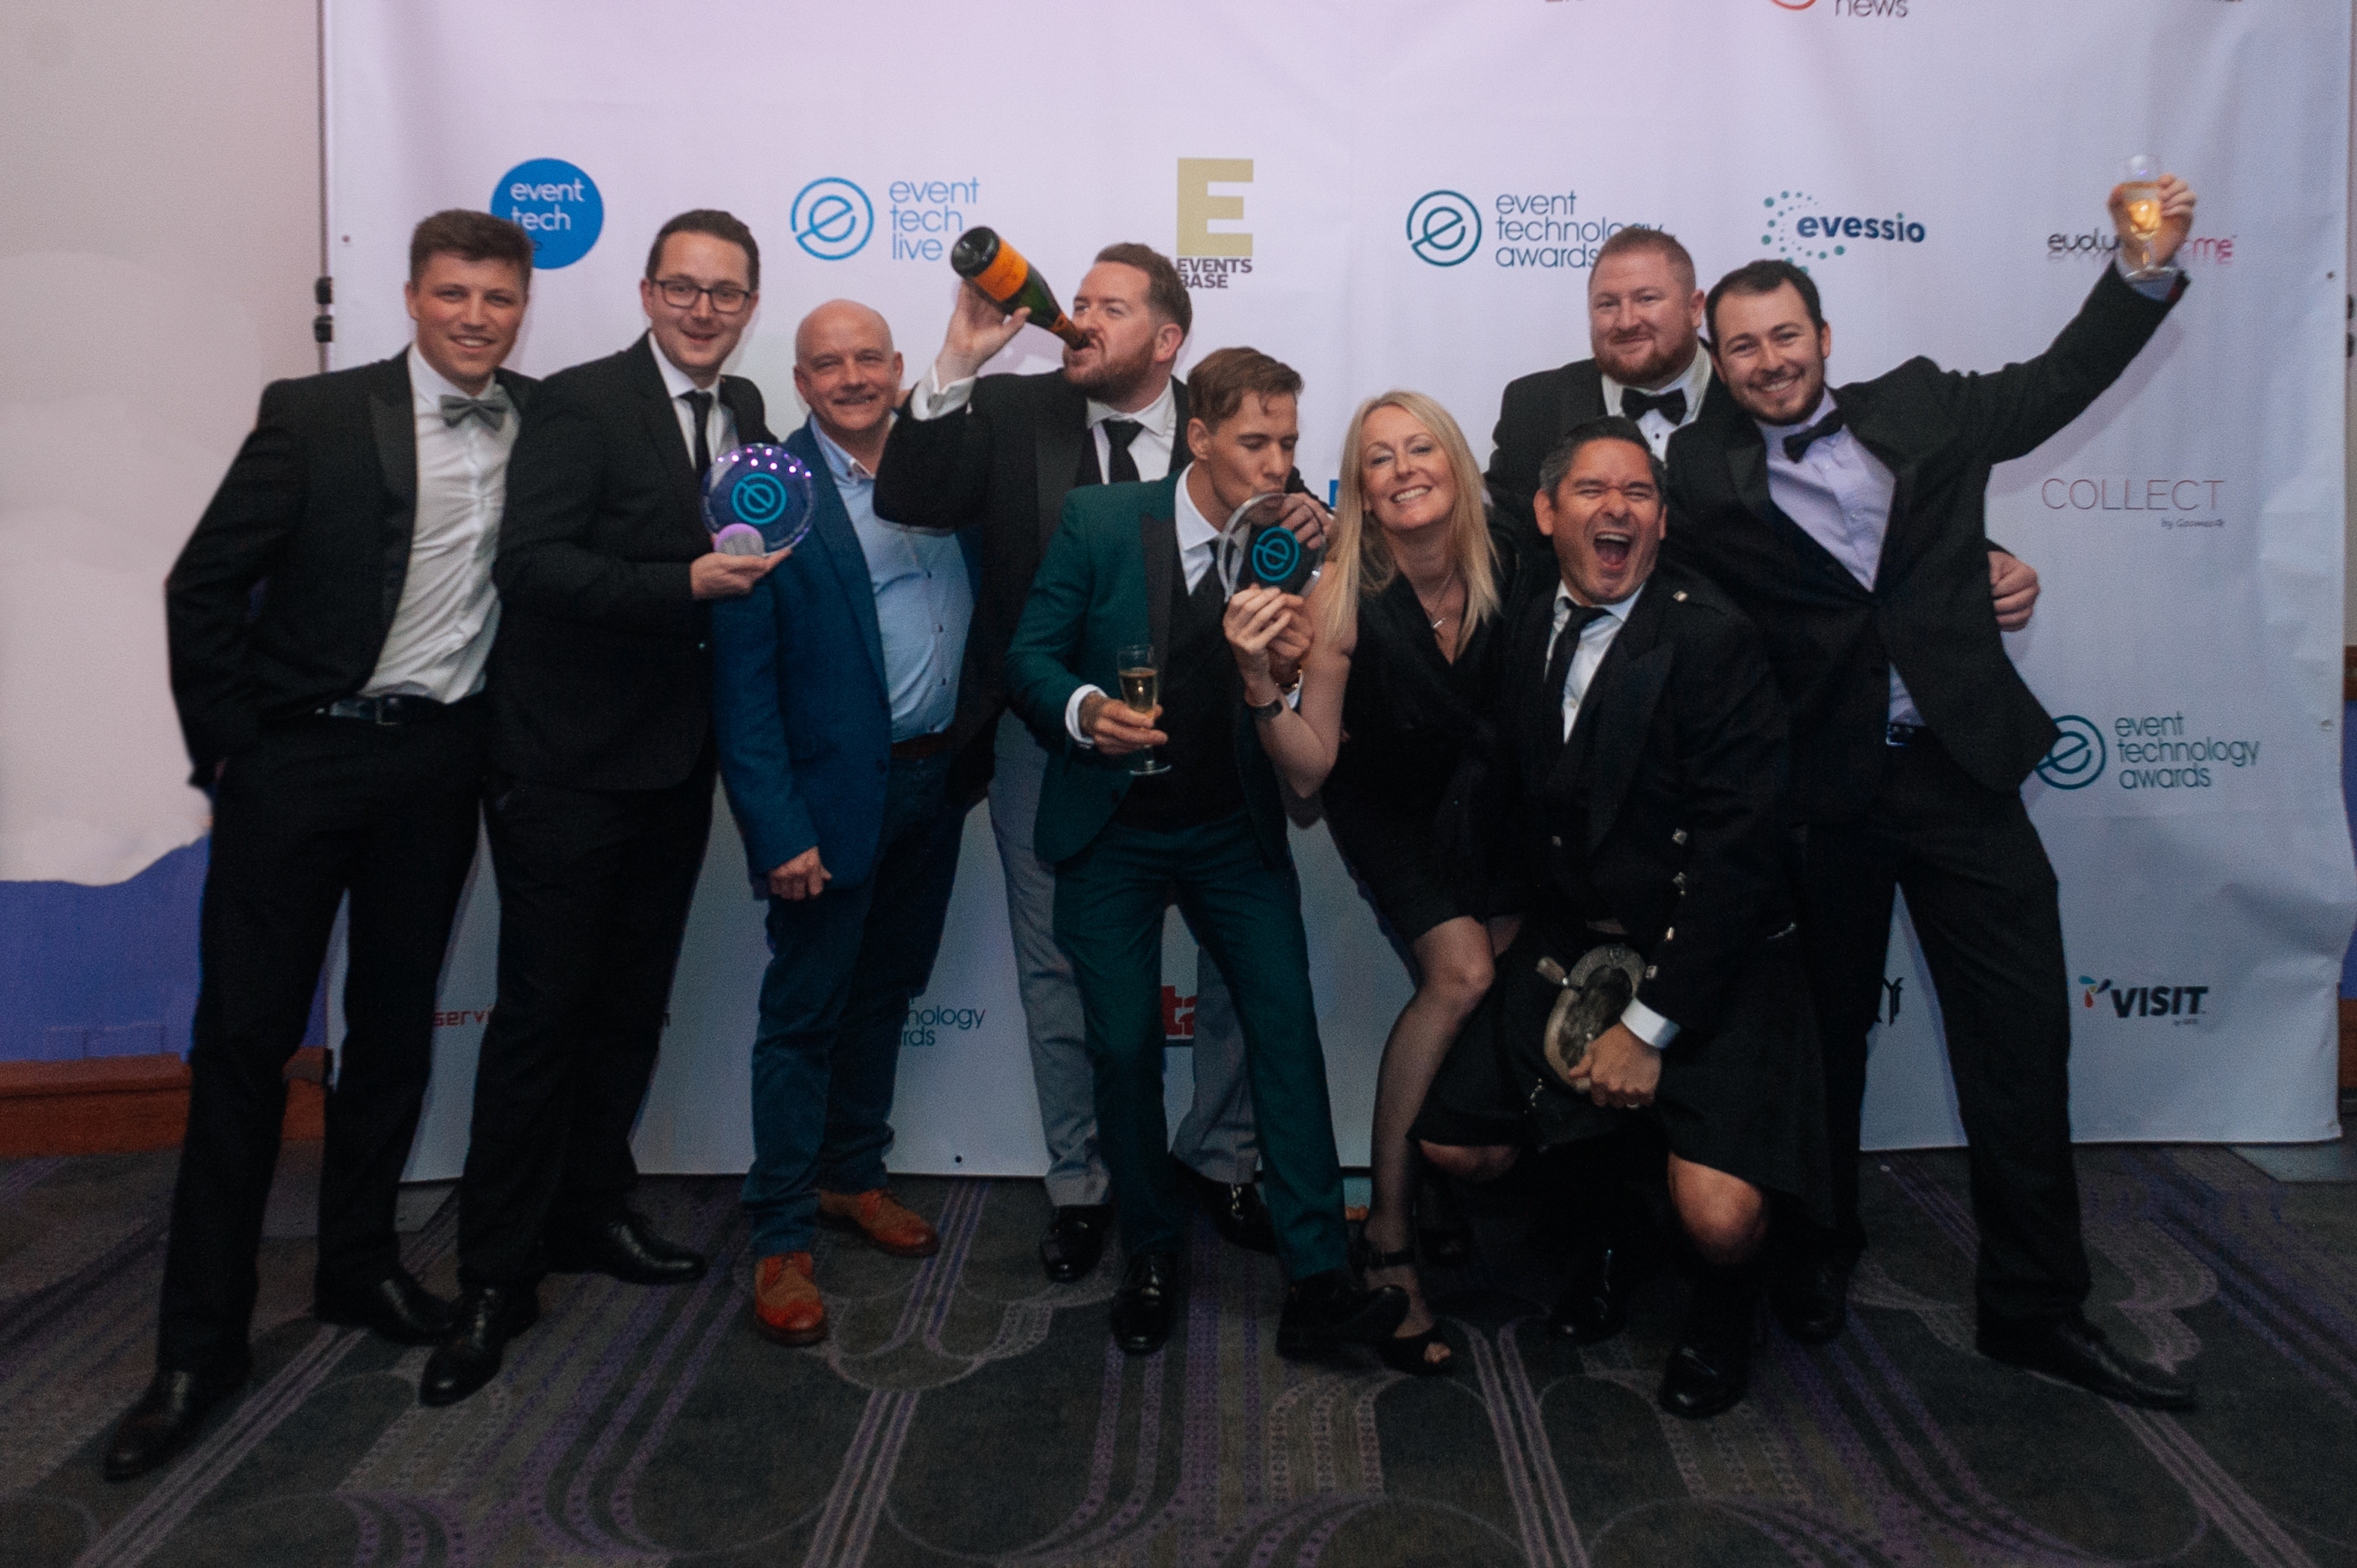 group celebrating event technology award win